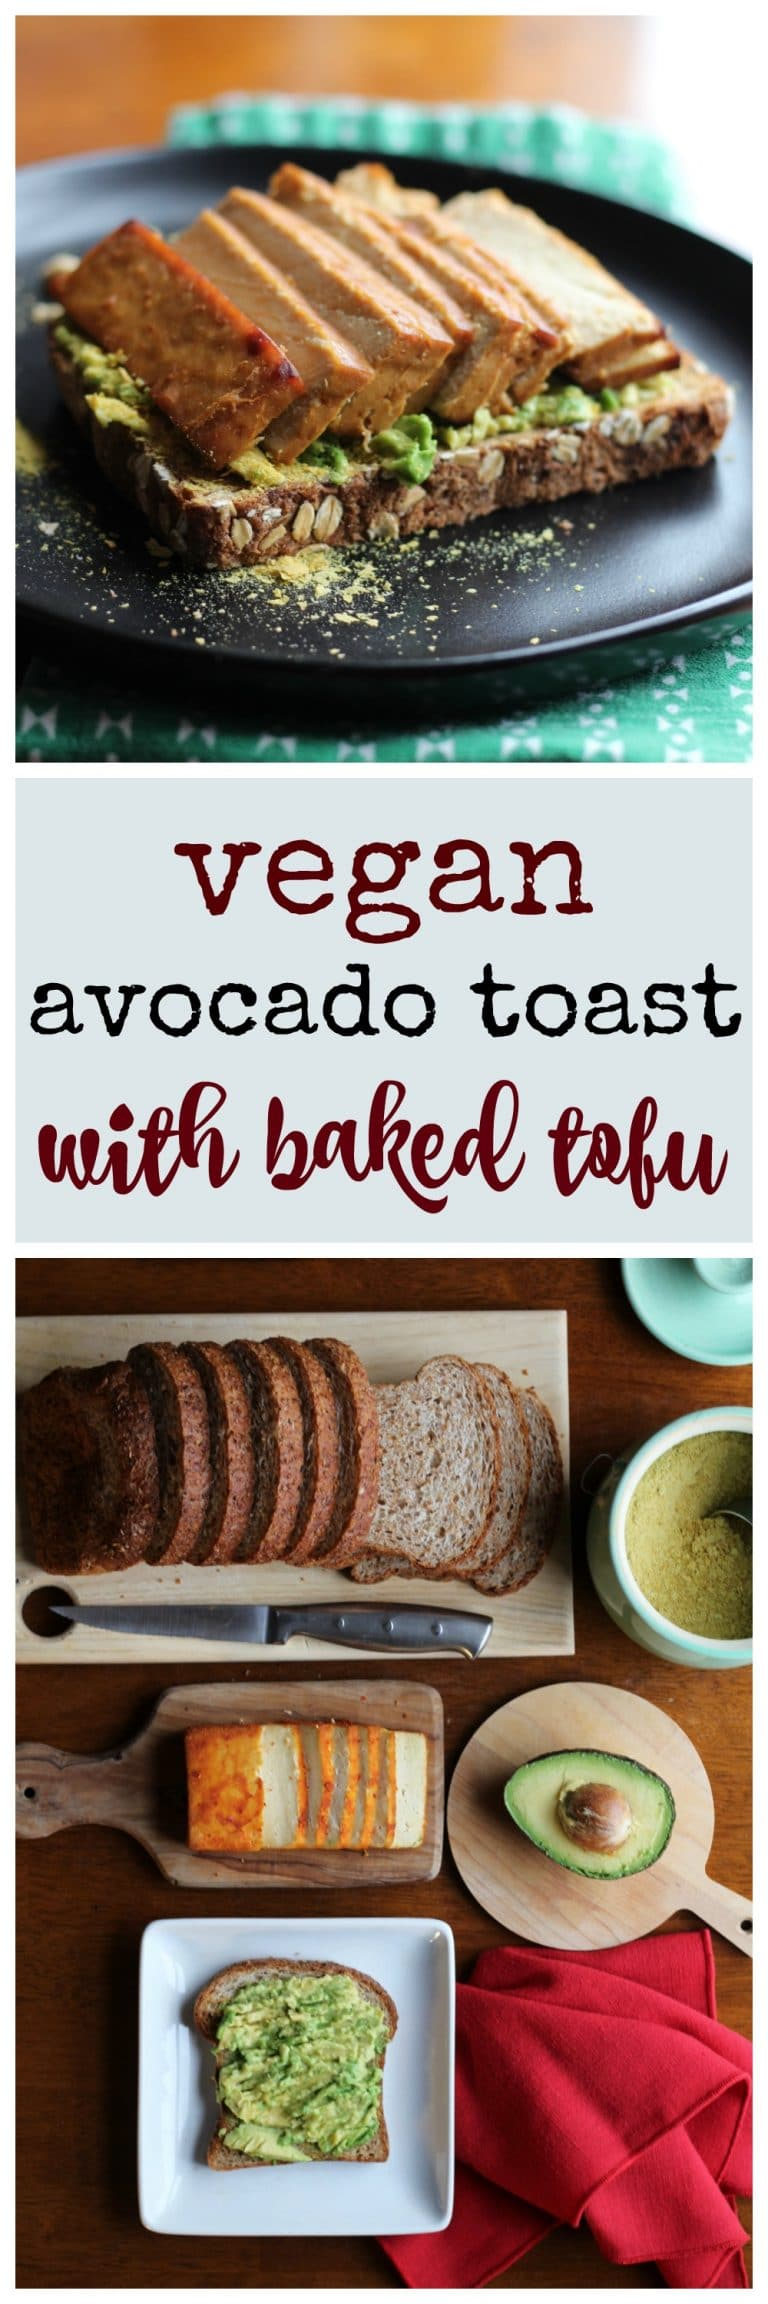 This simple vegan avocado toast recipe includes baked tofu and a sprinkling of nutritional yeast flakes. Save time by using packaged baked tofu. Teriyaki tofu & sriracha tofu are particularly good. This delicious start to the day has a hit of protein and fat to keep me going until lunchtime.